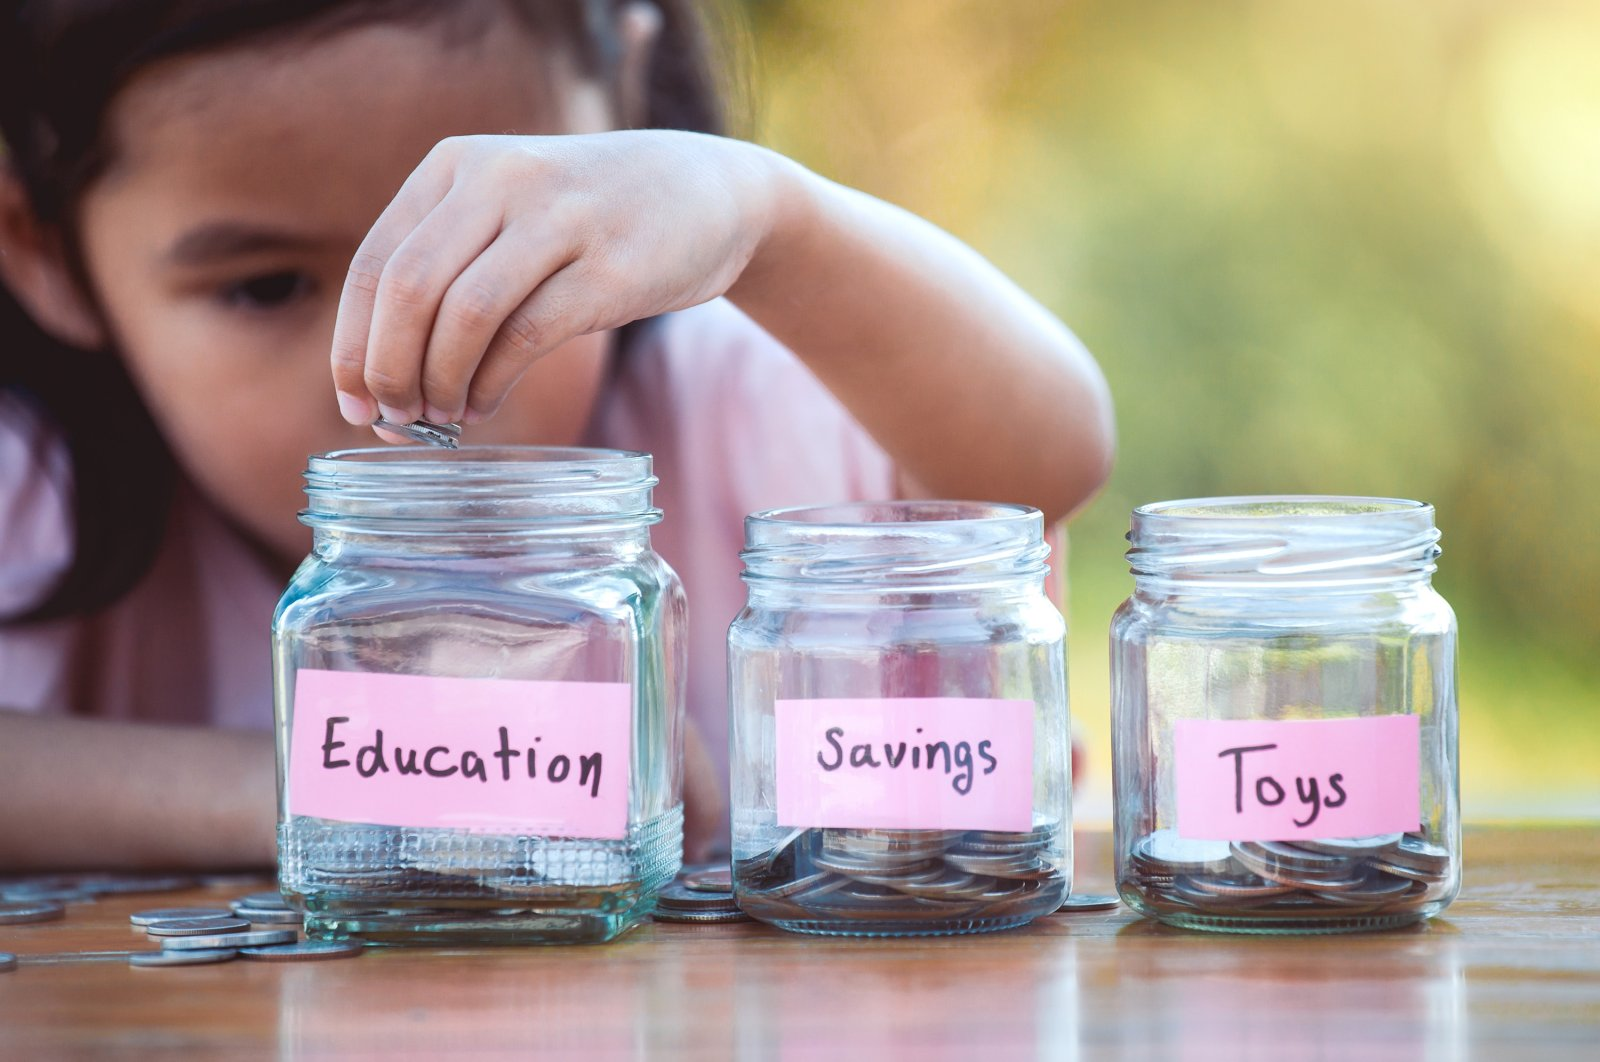 When it comes to money management, experts say the earlier children learn it, the better. (Shutterstock Photo)